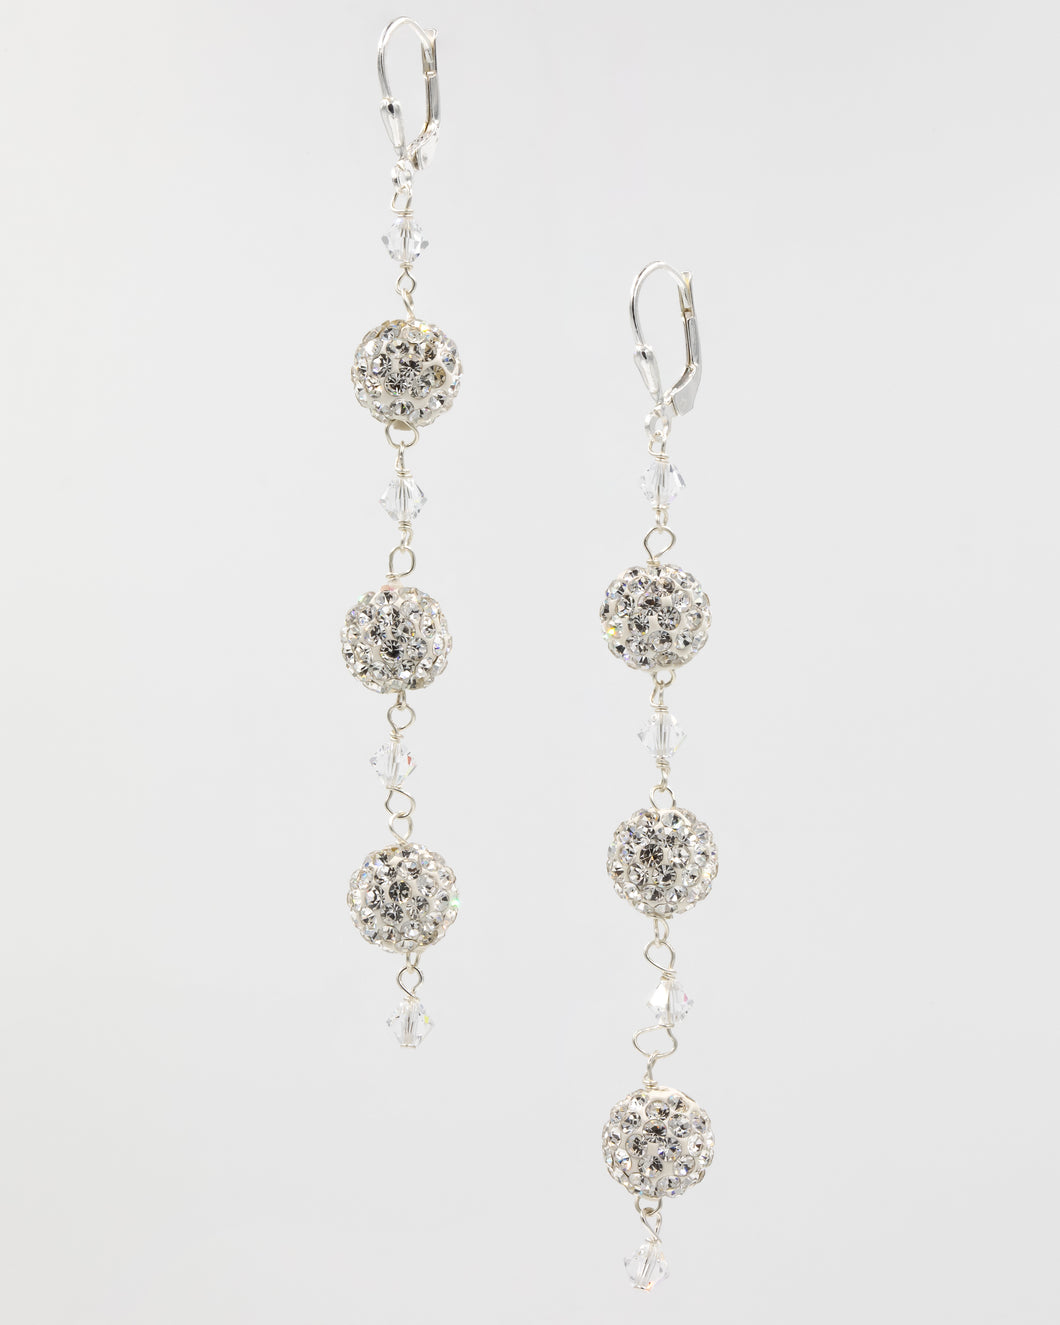 Picture of earrings with Swarovski crystal and pavé balls